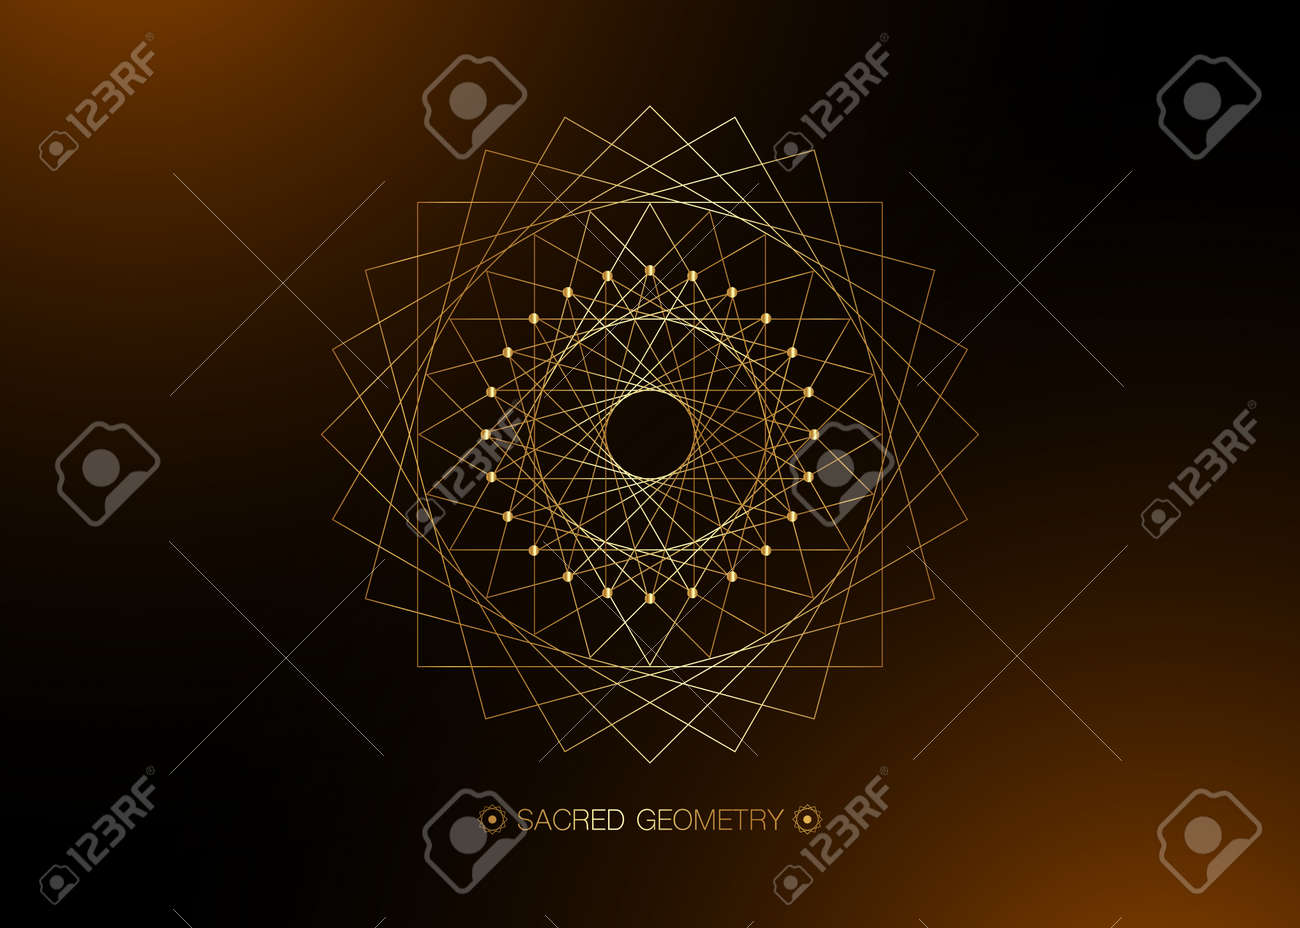 Gold Circle mandala, Sacred Geometry, round frame sign geometric logo design with intertwining of square and triangular shapes, golden line drawing mystic icon vector isolated on black background - 171954029